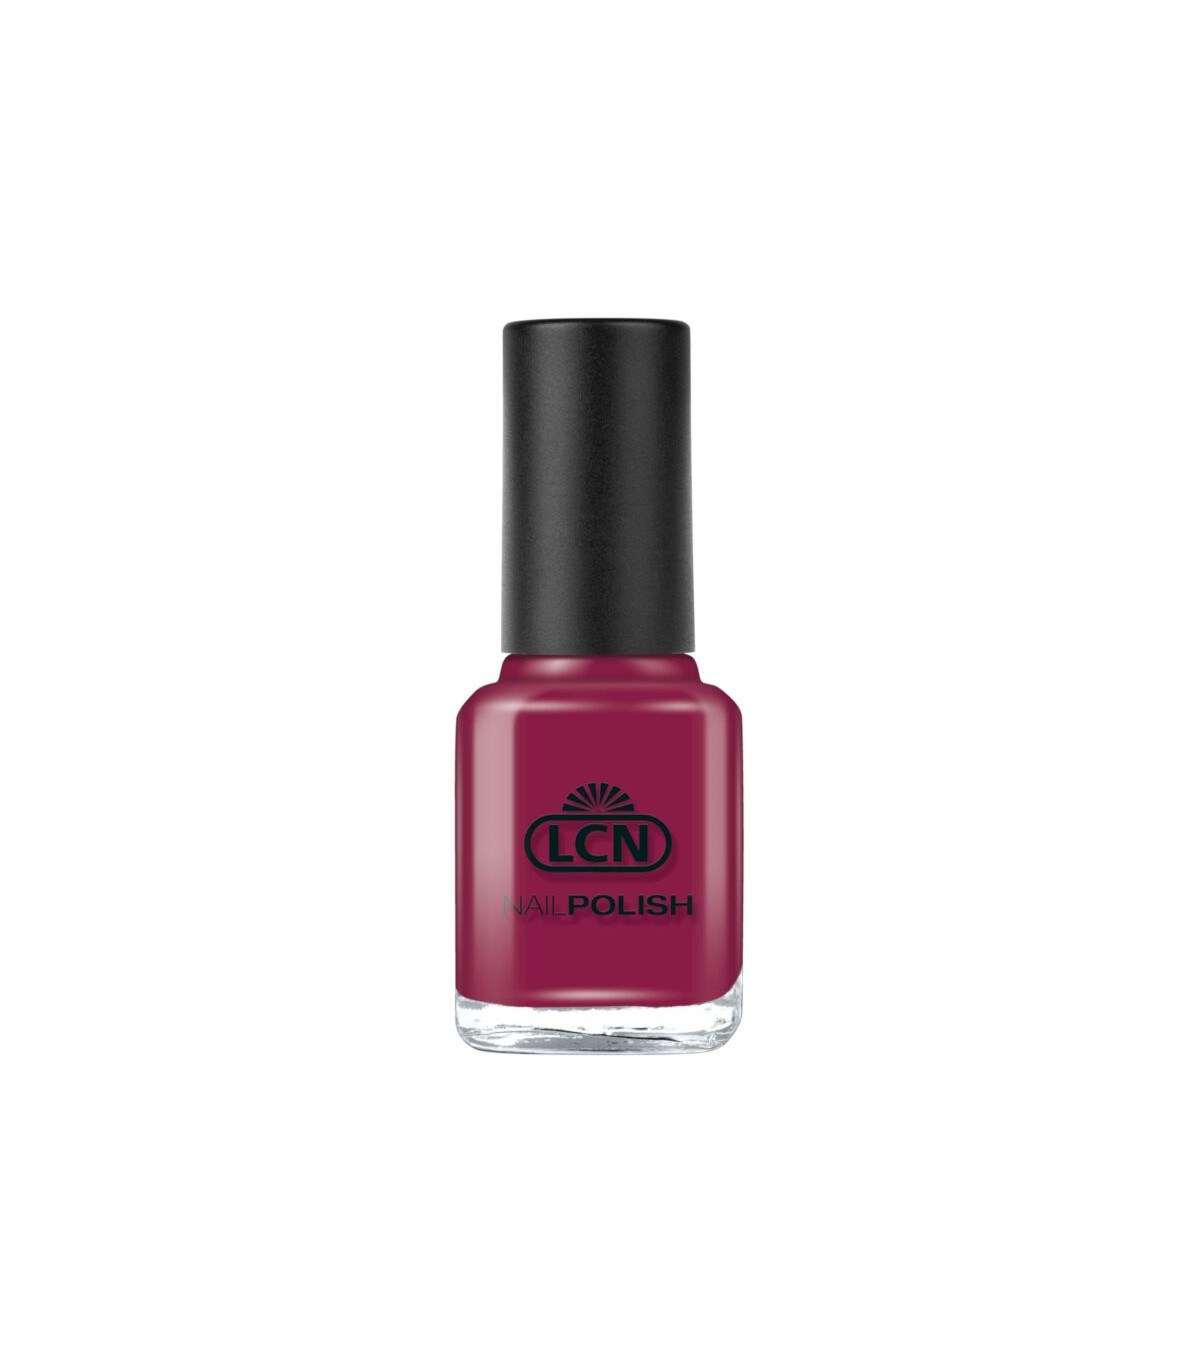 vernis-a-ongles-collection-cozy-candlelight-8ml